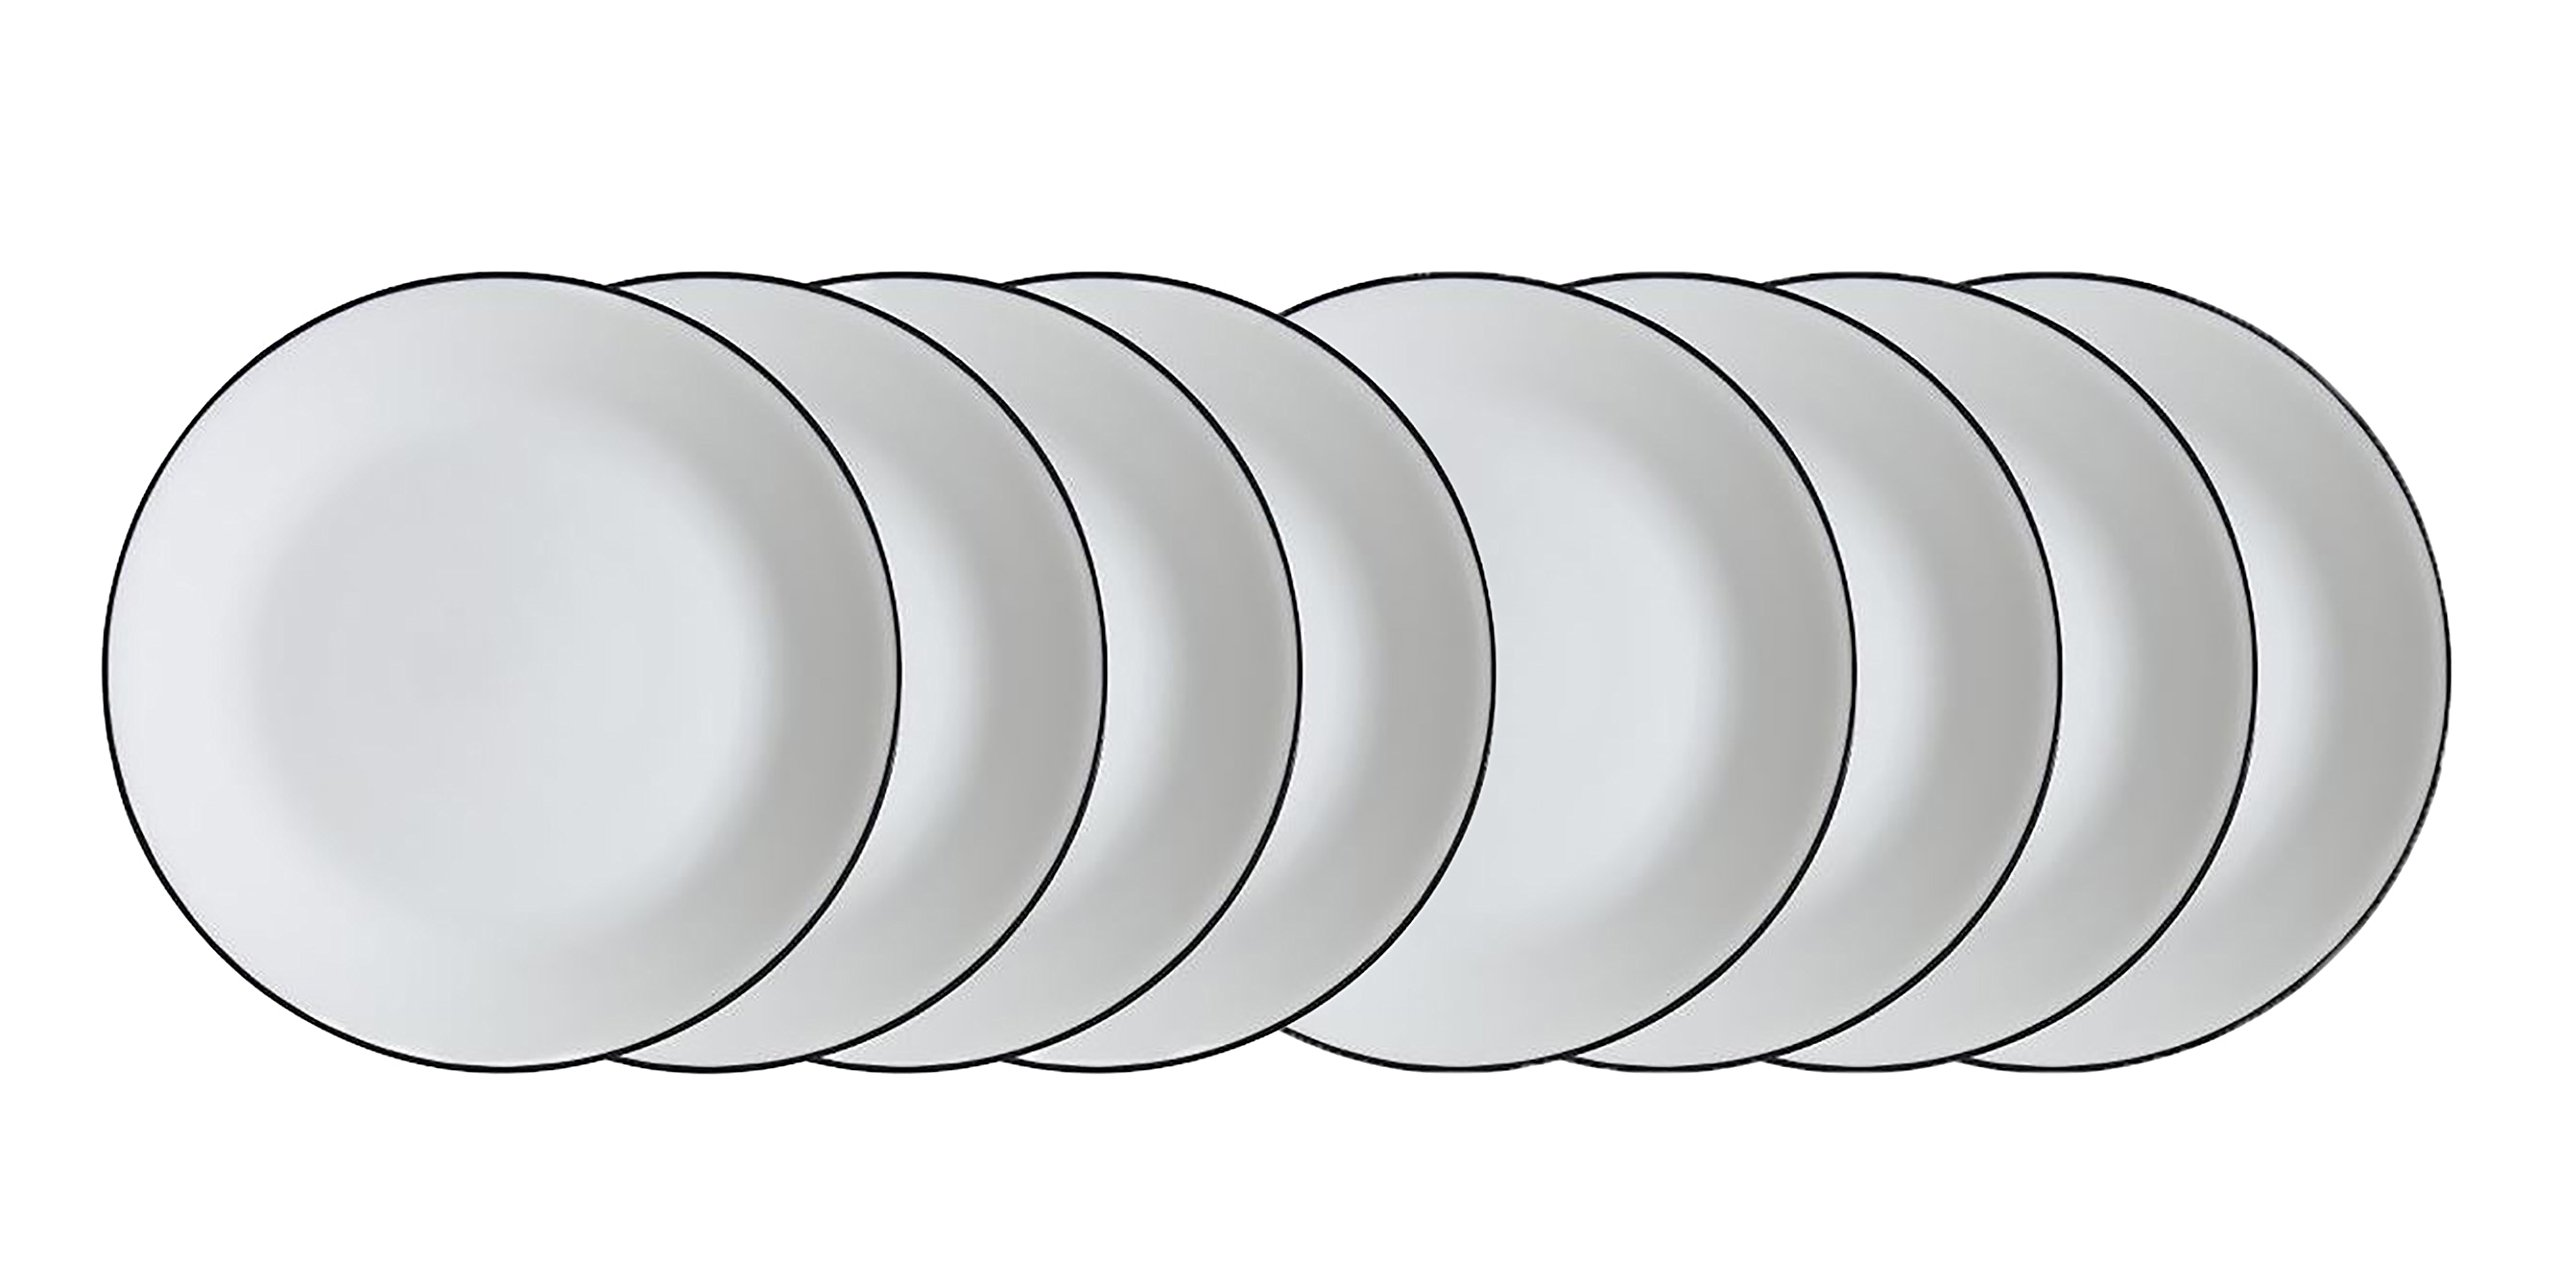 Corelle Livingware Brilliant Black 10.25 Dinner Plates - Set of 8 (10.25)